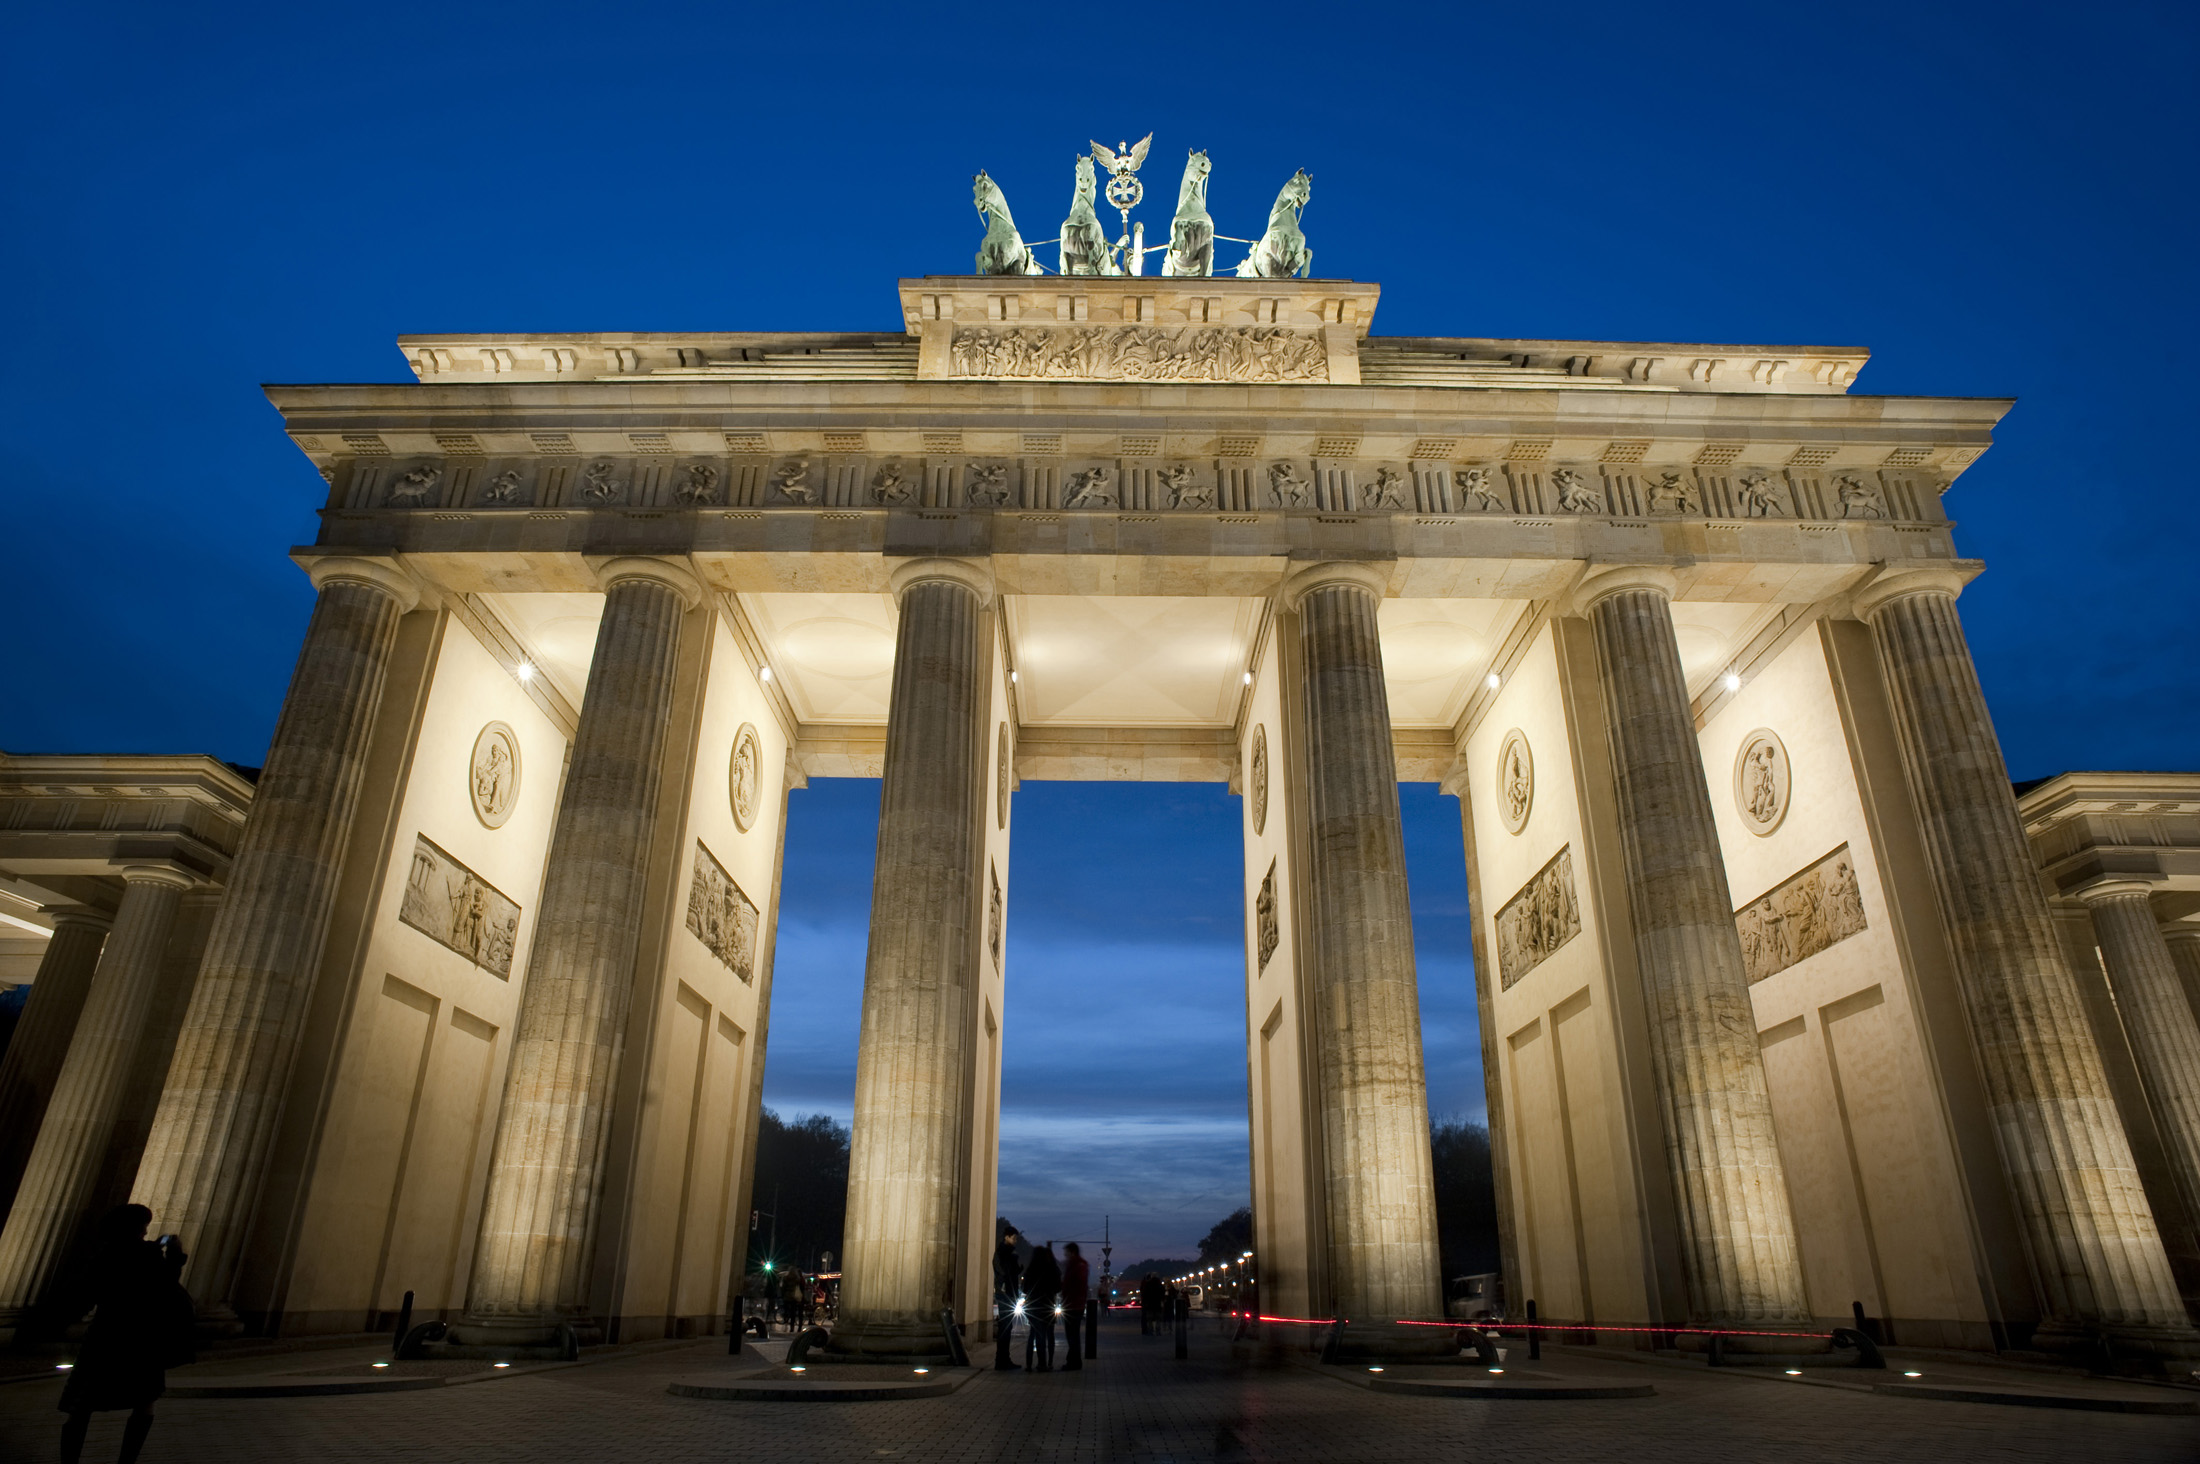 a nighttime view of berlin's famous brandenburg gate, Brandenburger Tor